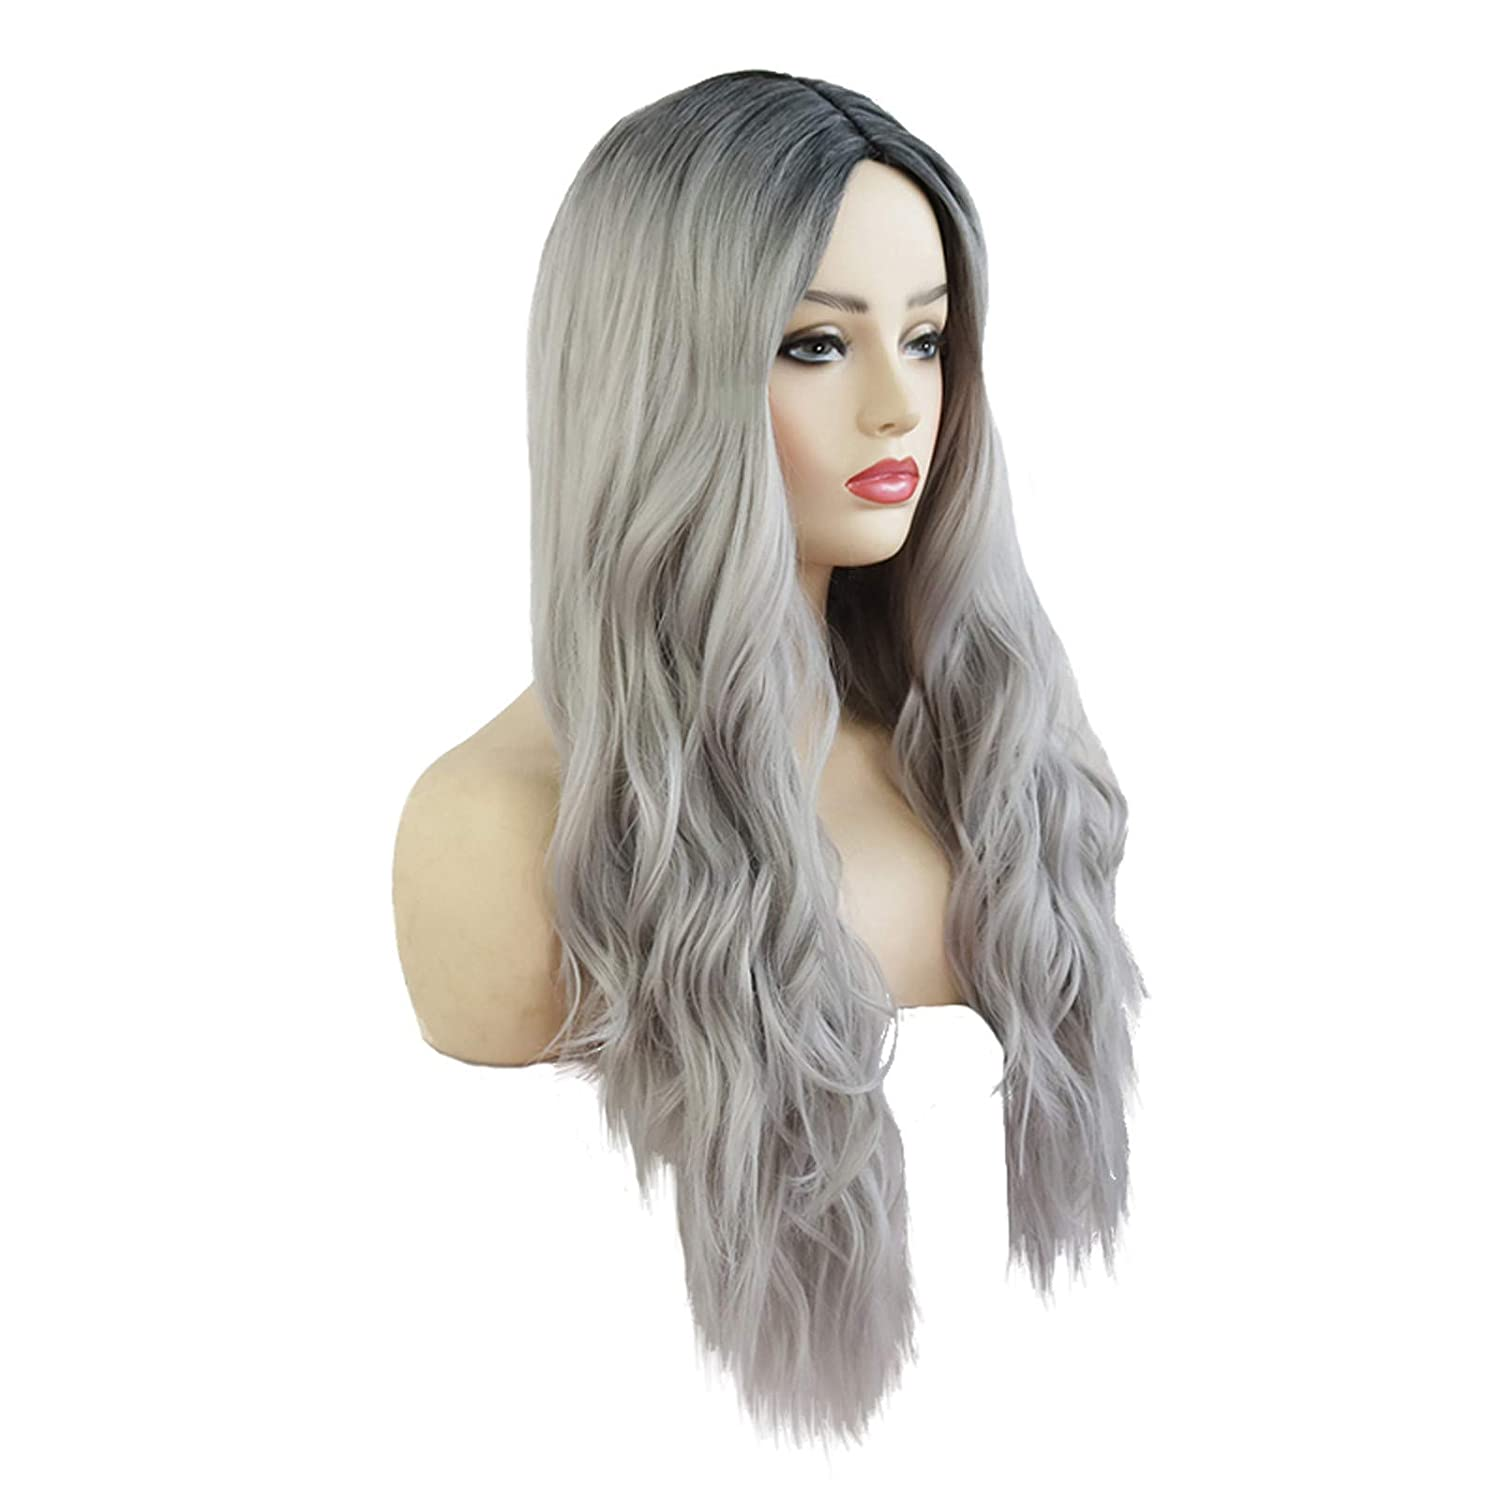 2021 Hot Mid-Length Straight Hair Long Wig,Women Gradient Pink Long Curly Hair Big Wave Wig Headgear Gold